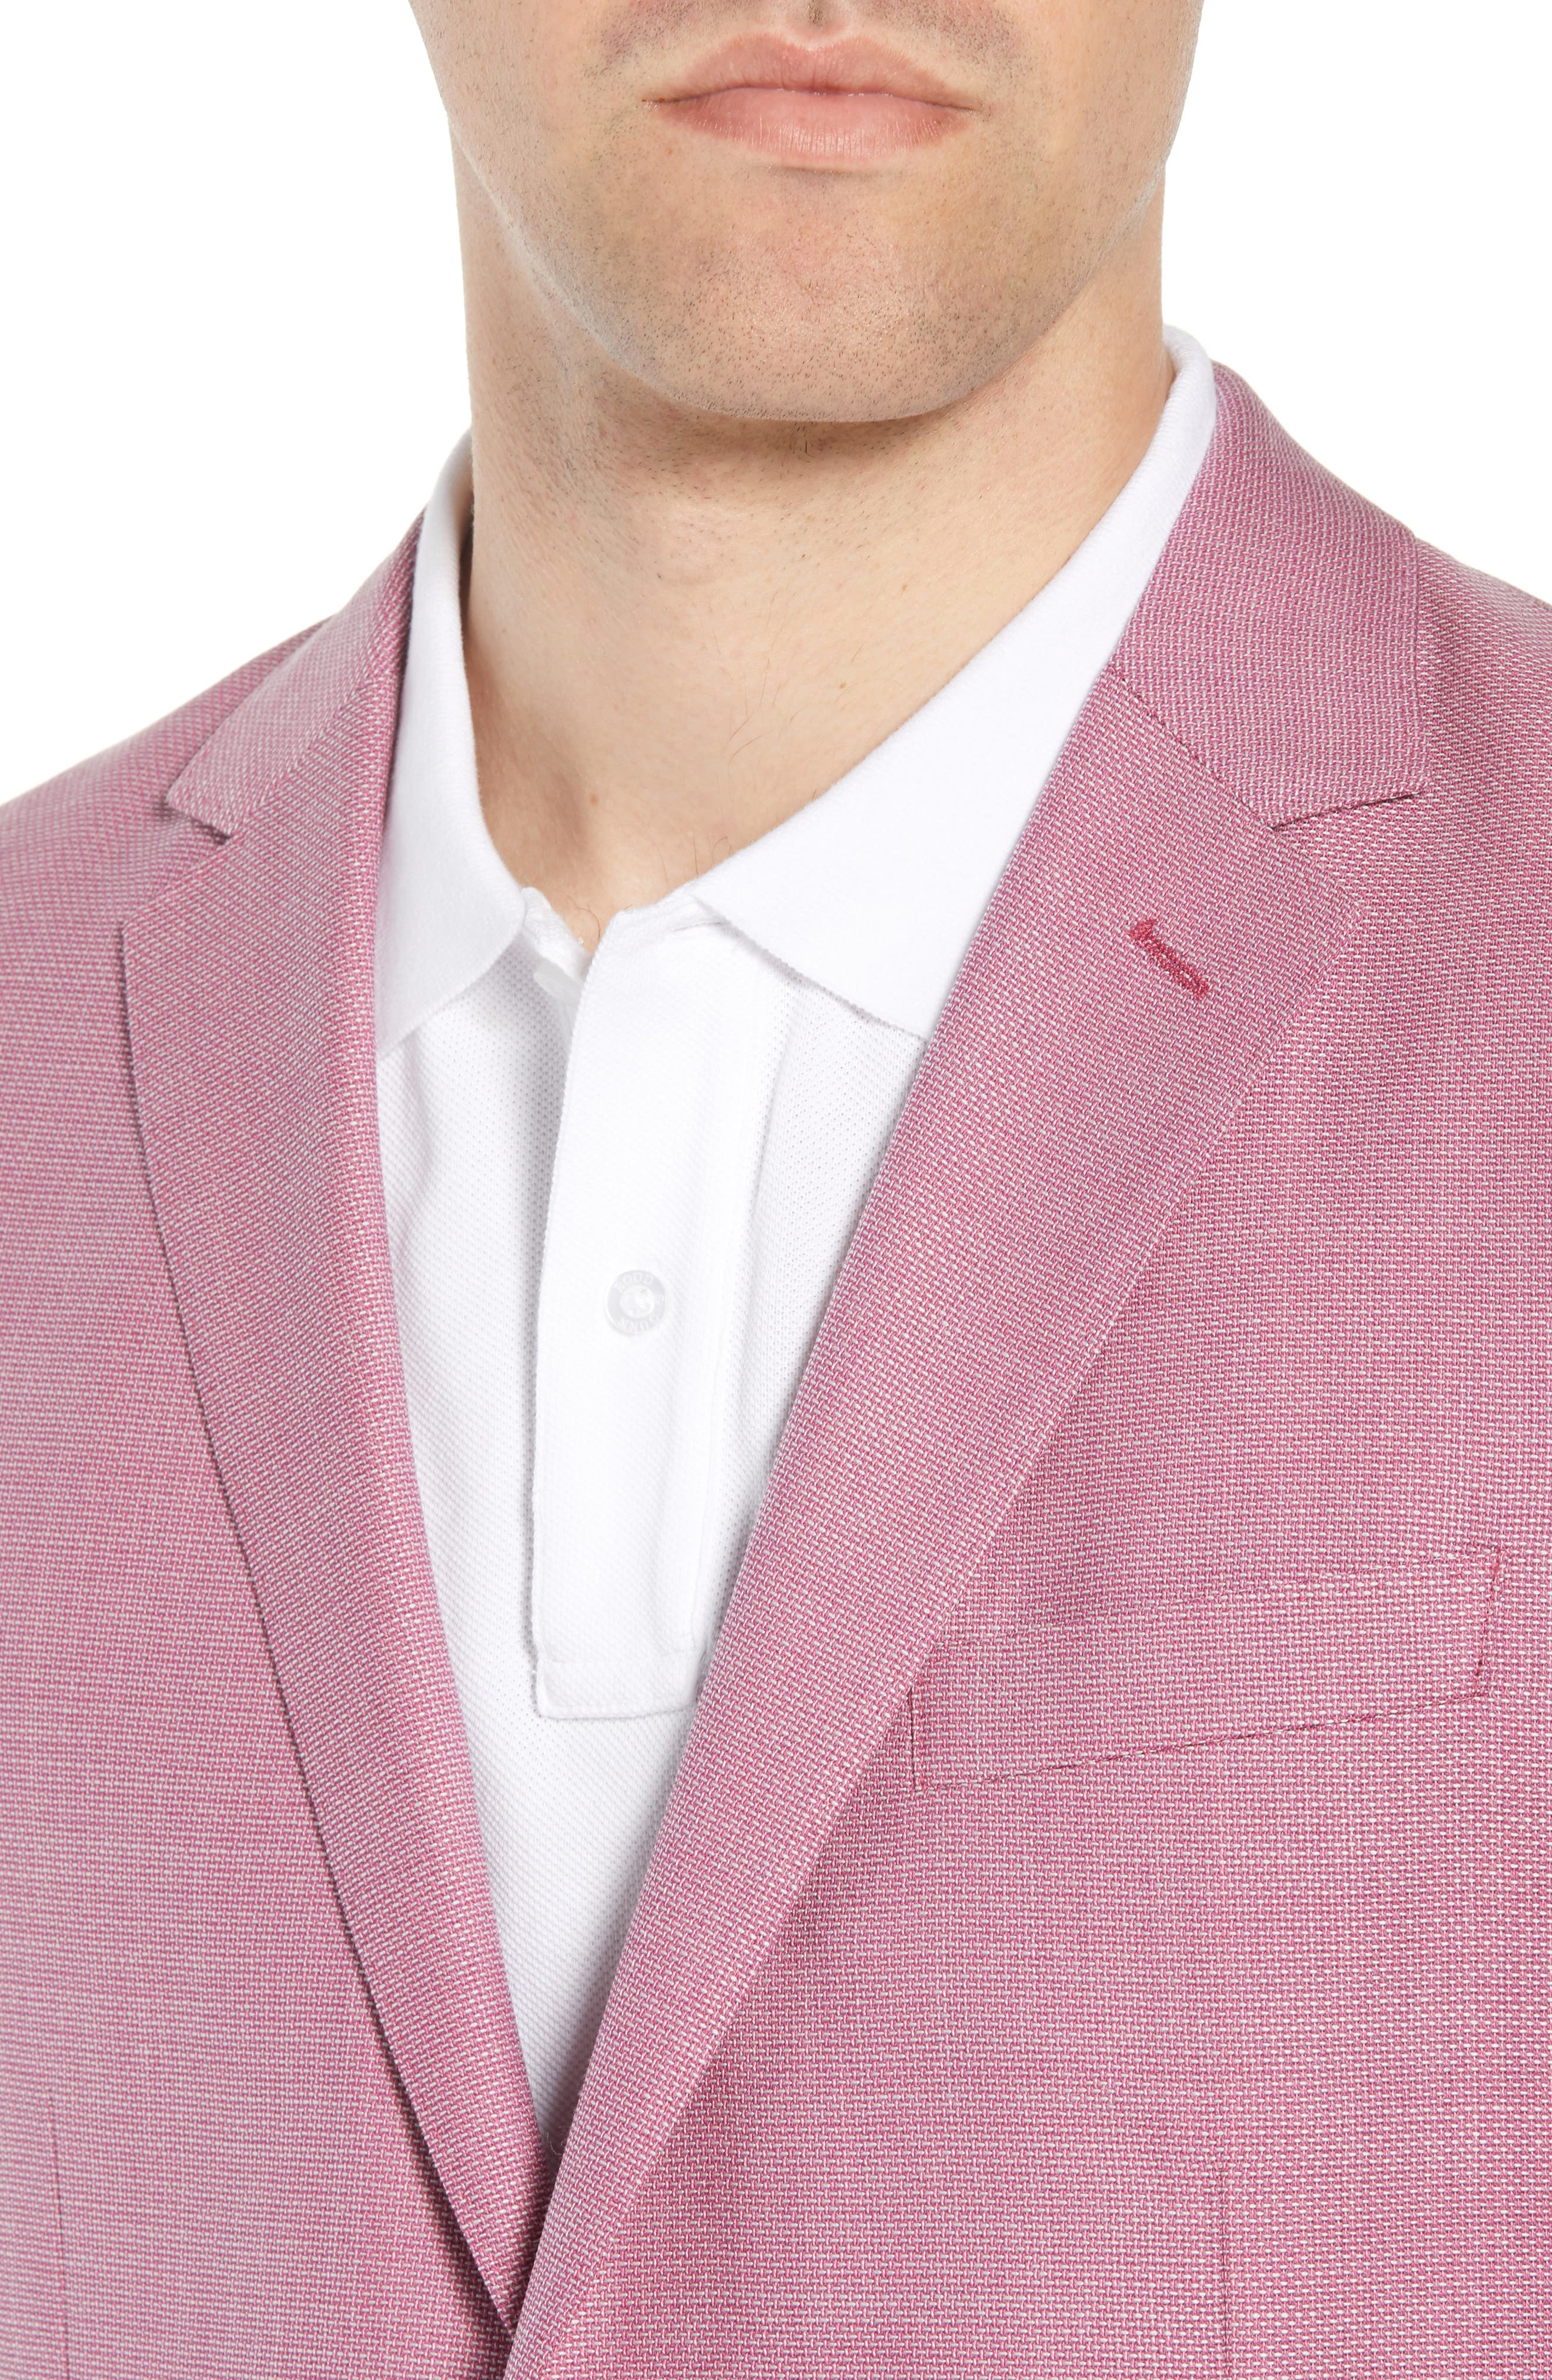 Trim Fit Wool Unconstructed Blazer,                             Alternate thumbnail 12, color,